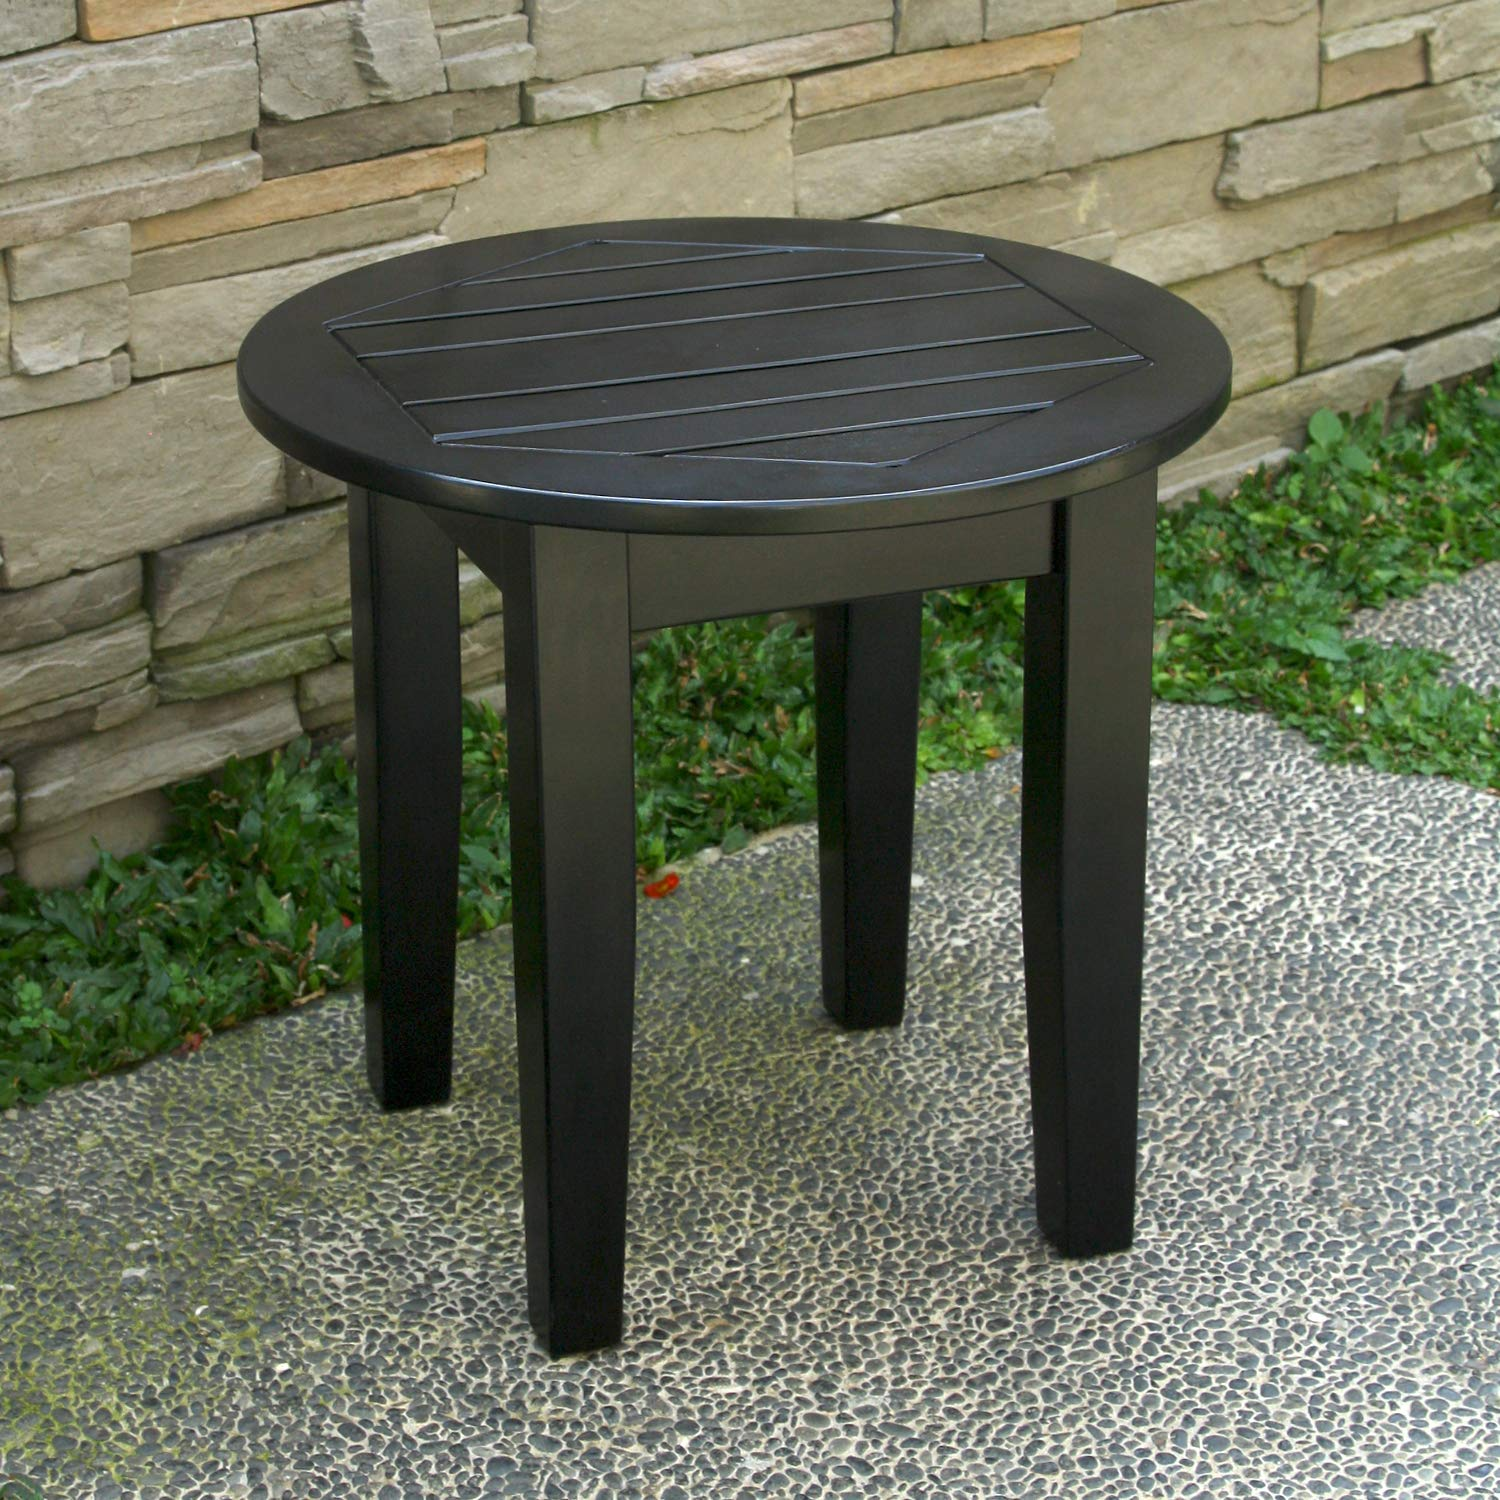 Cambridge-Casual AMZ-180590B Bentley, Round Side Table, Black